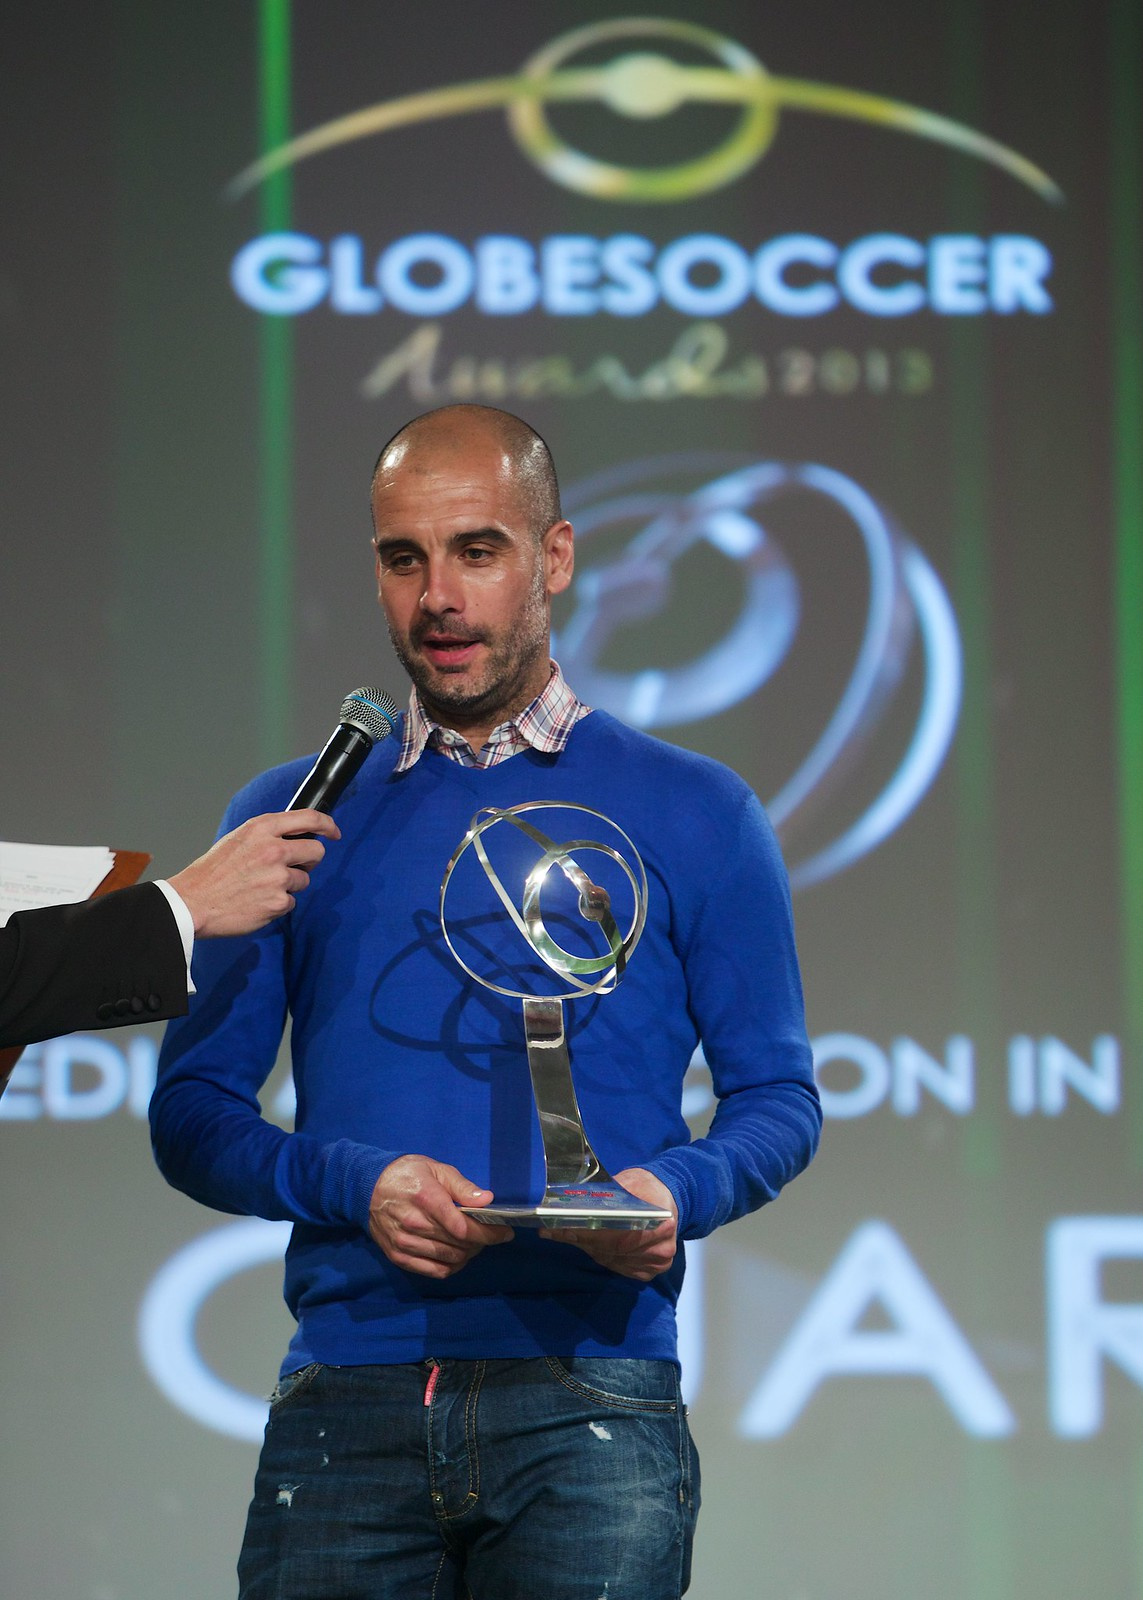 Globe Soccer Awards 189